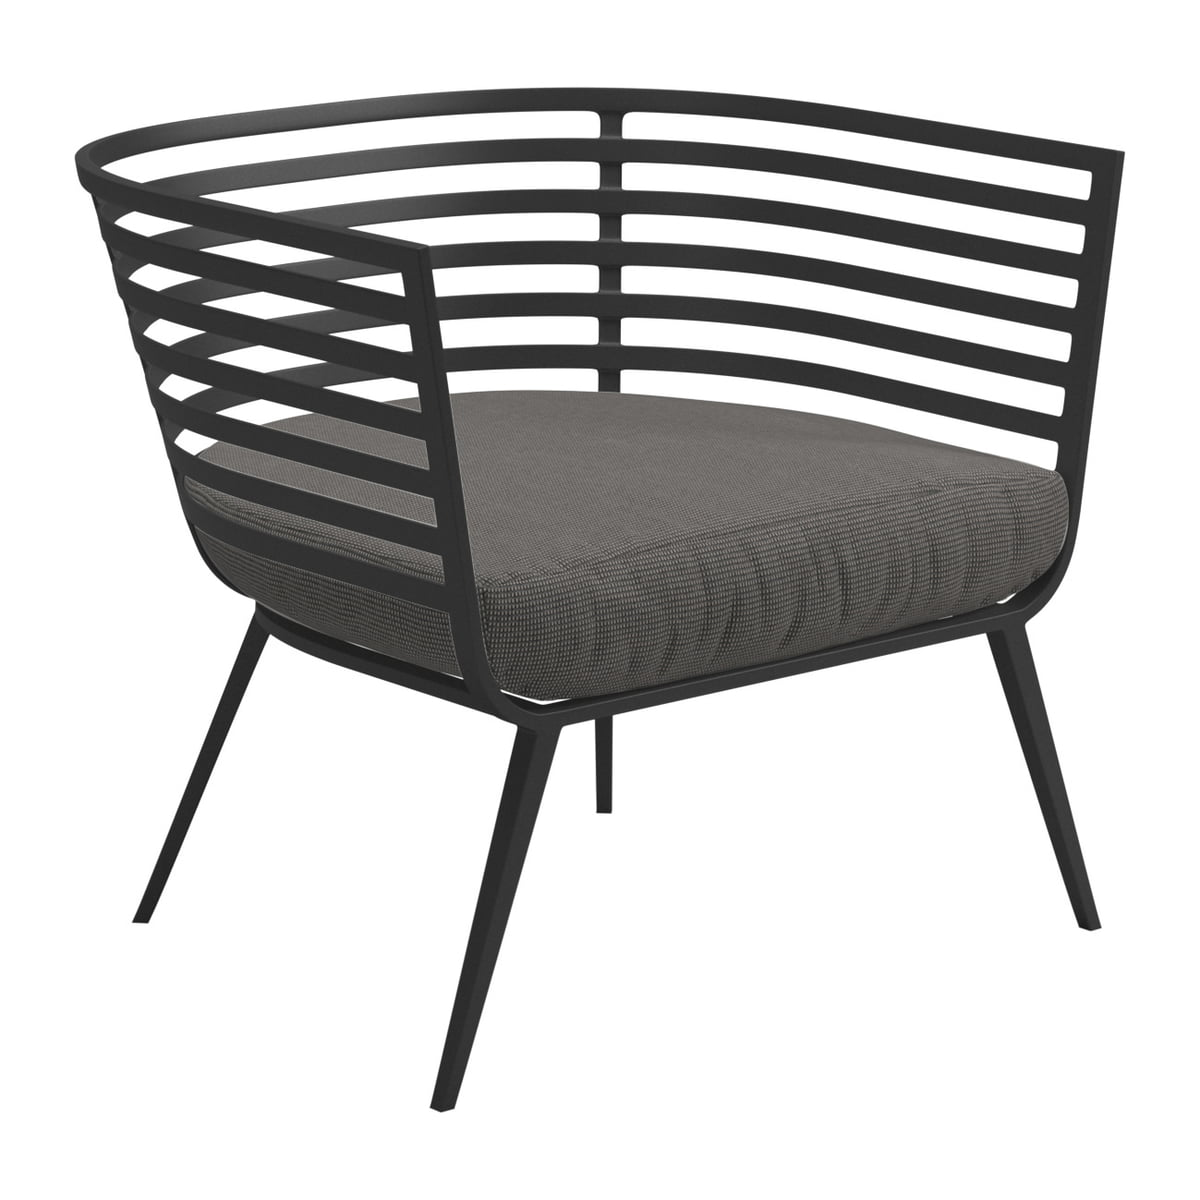 Outdoor Lounge Chair Vista Gloster Connox